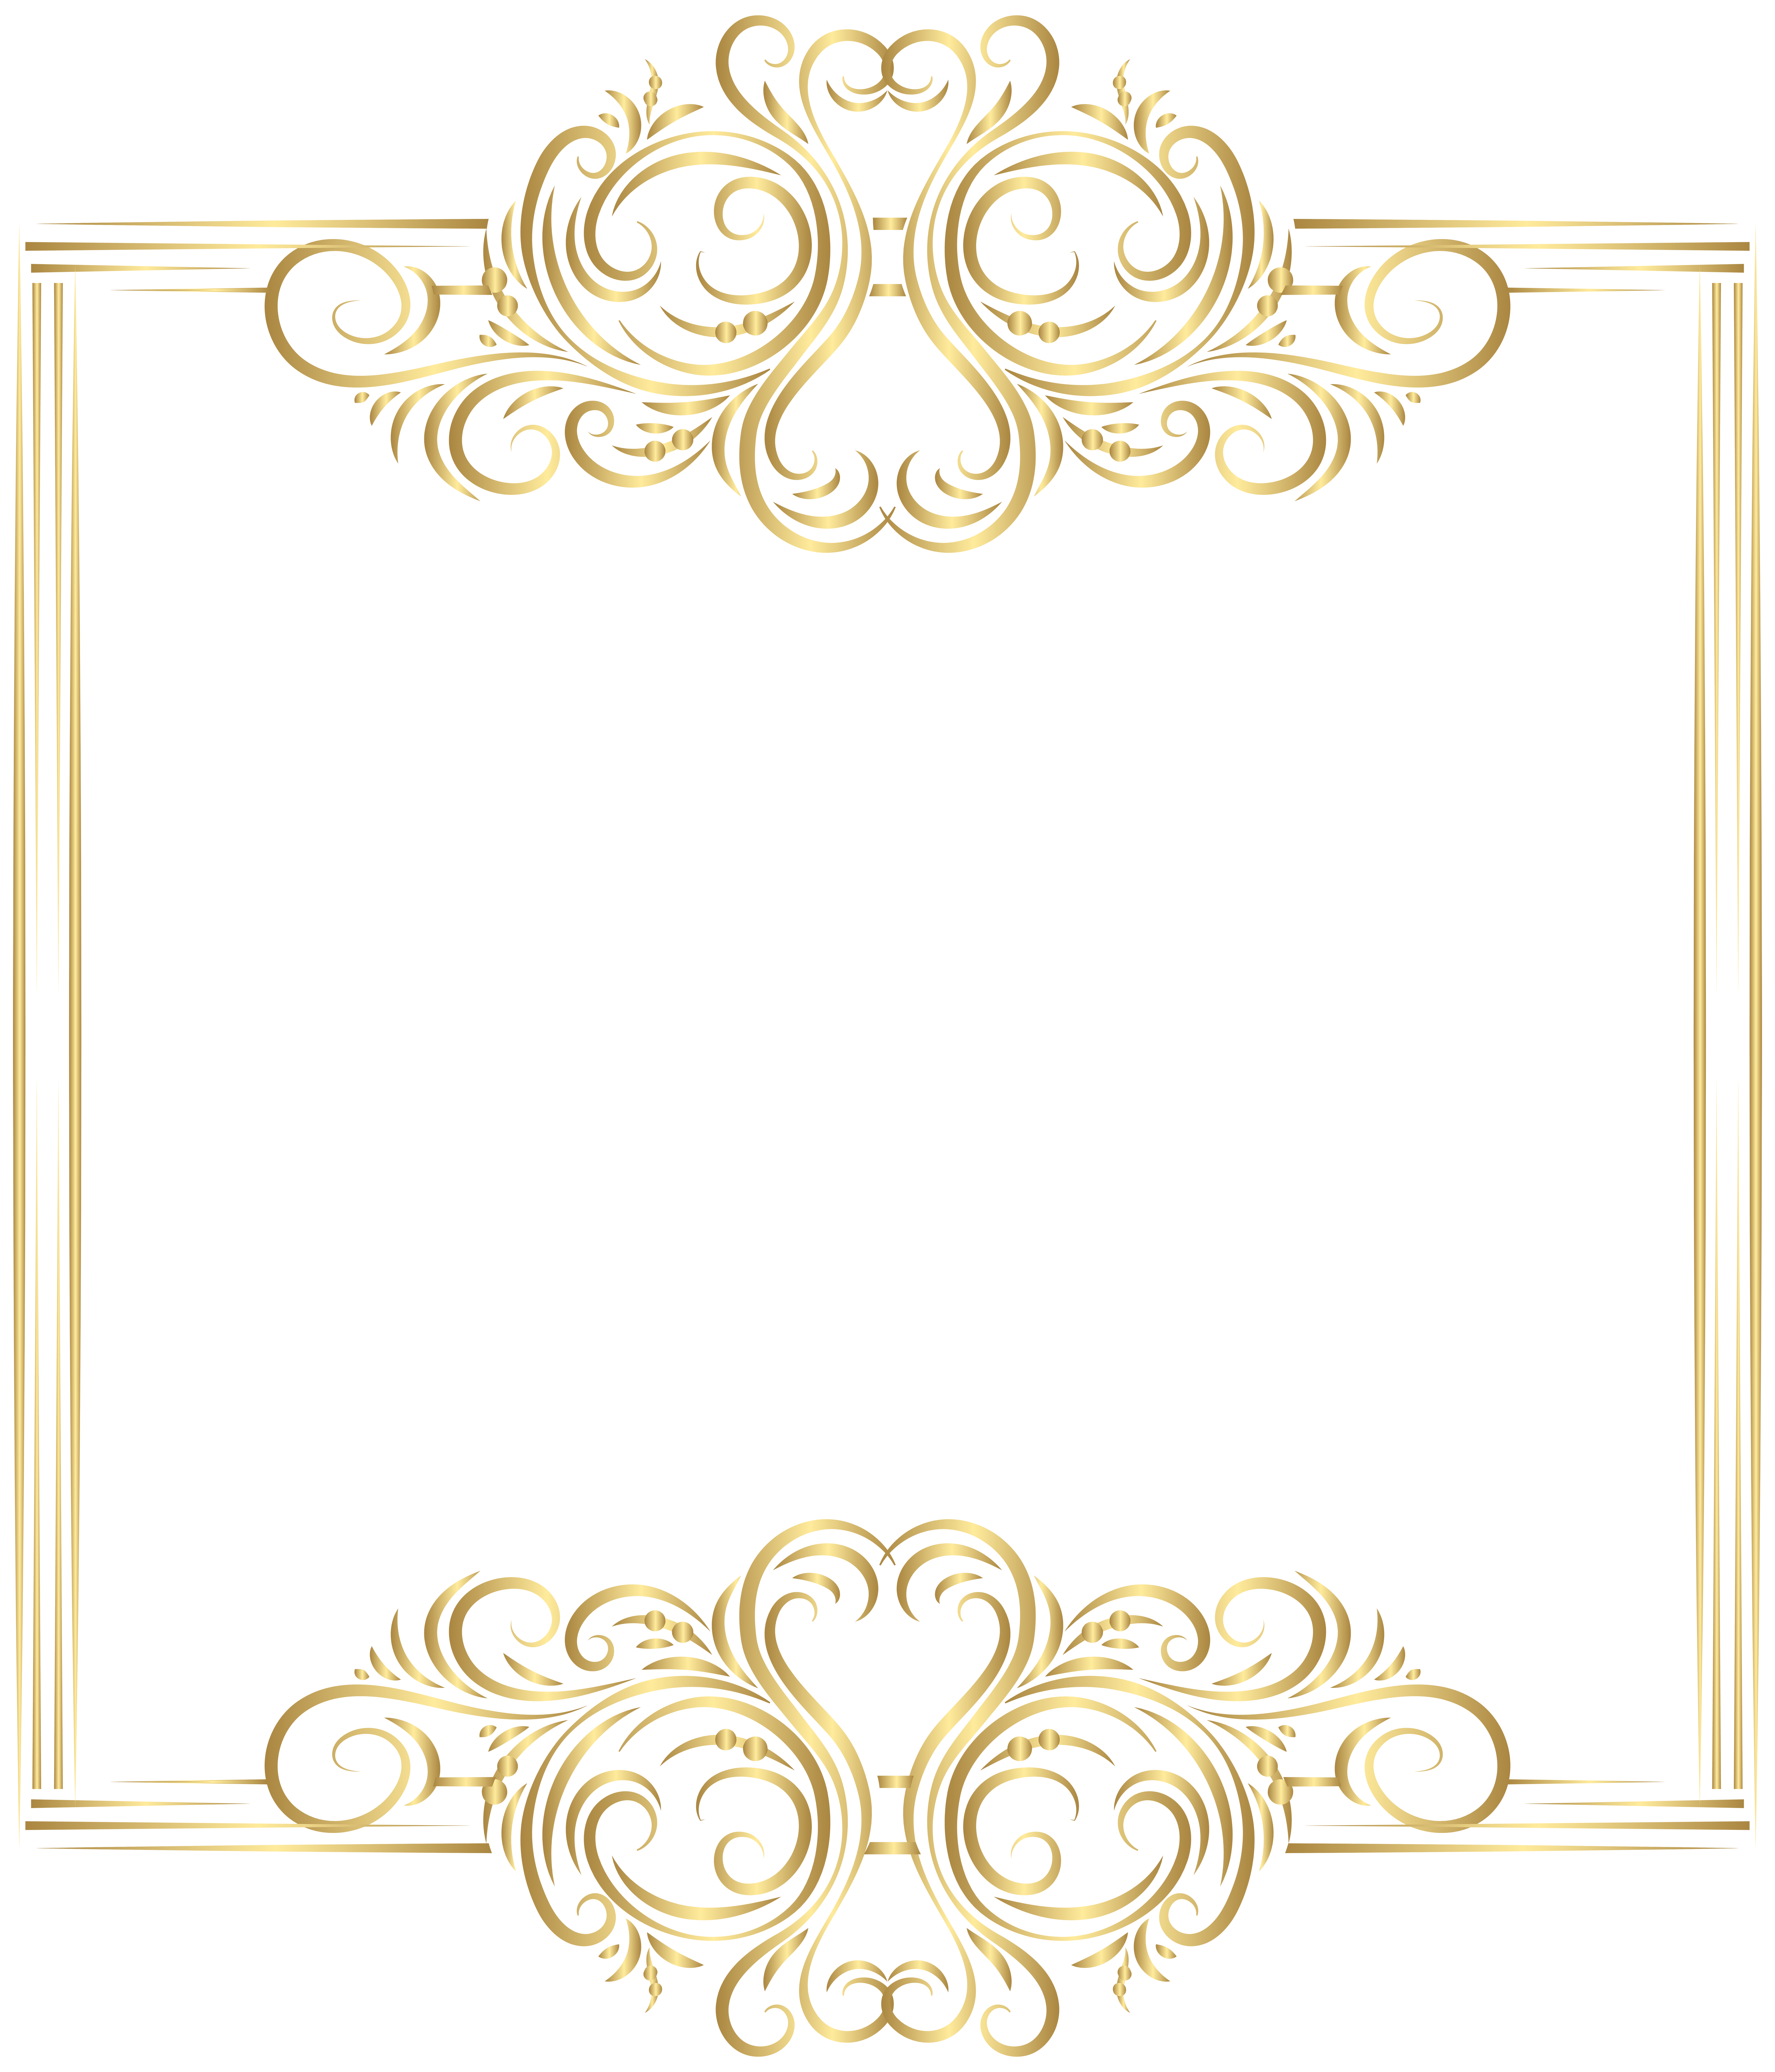 Pineapple clipart frame. Gold border png clip